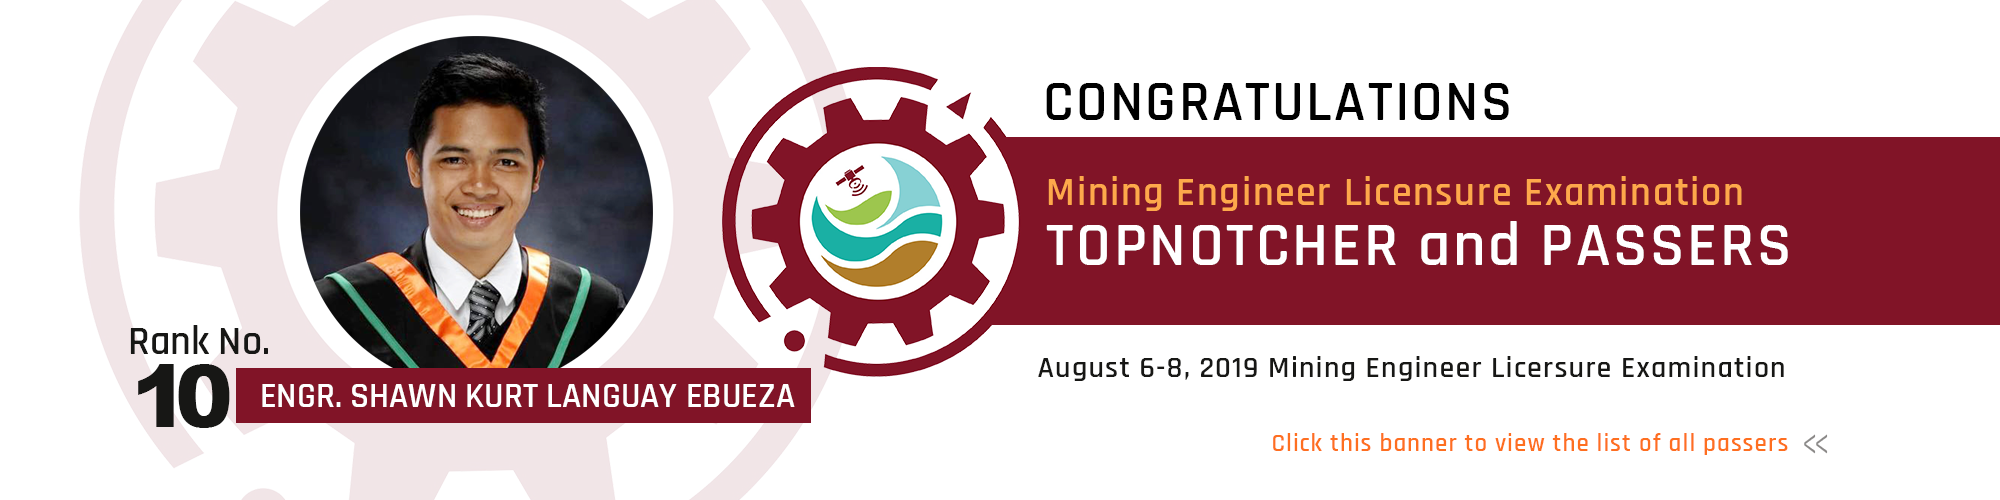 Mining Engineering Topnotcher and Passers 2019